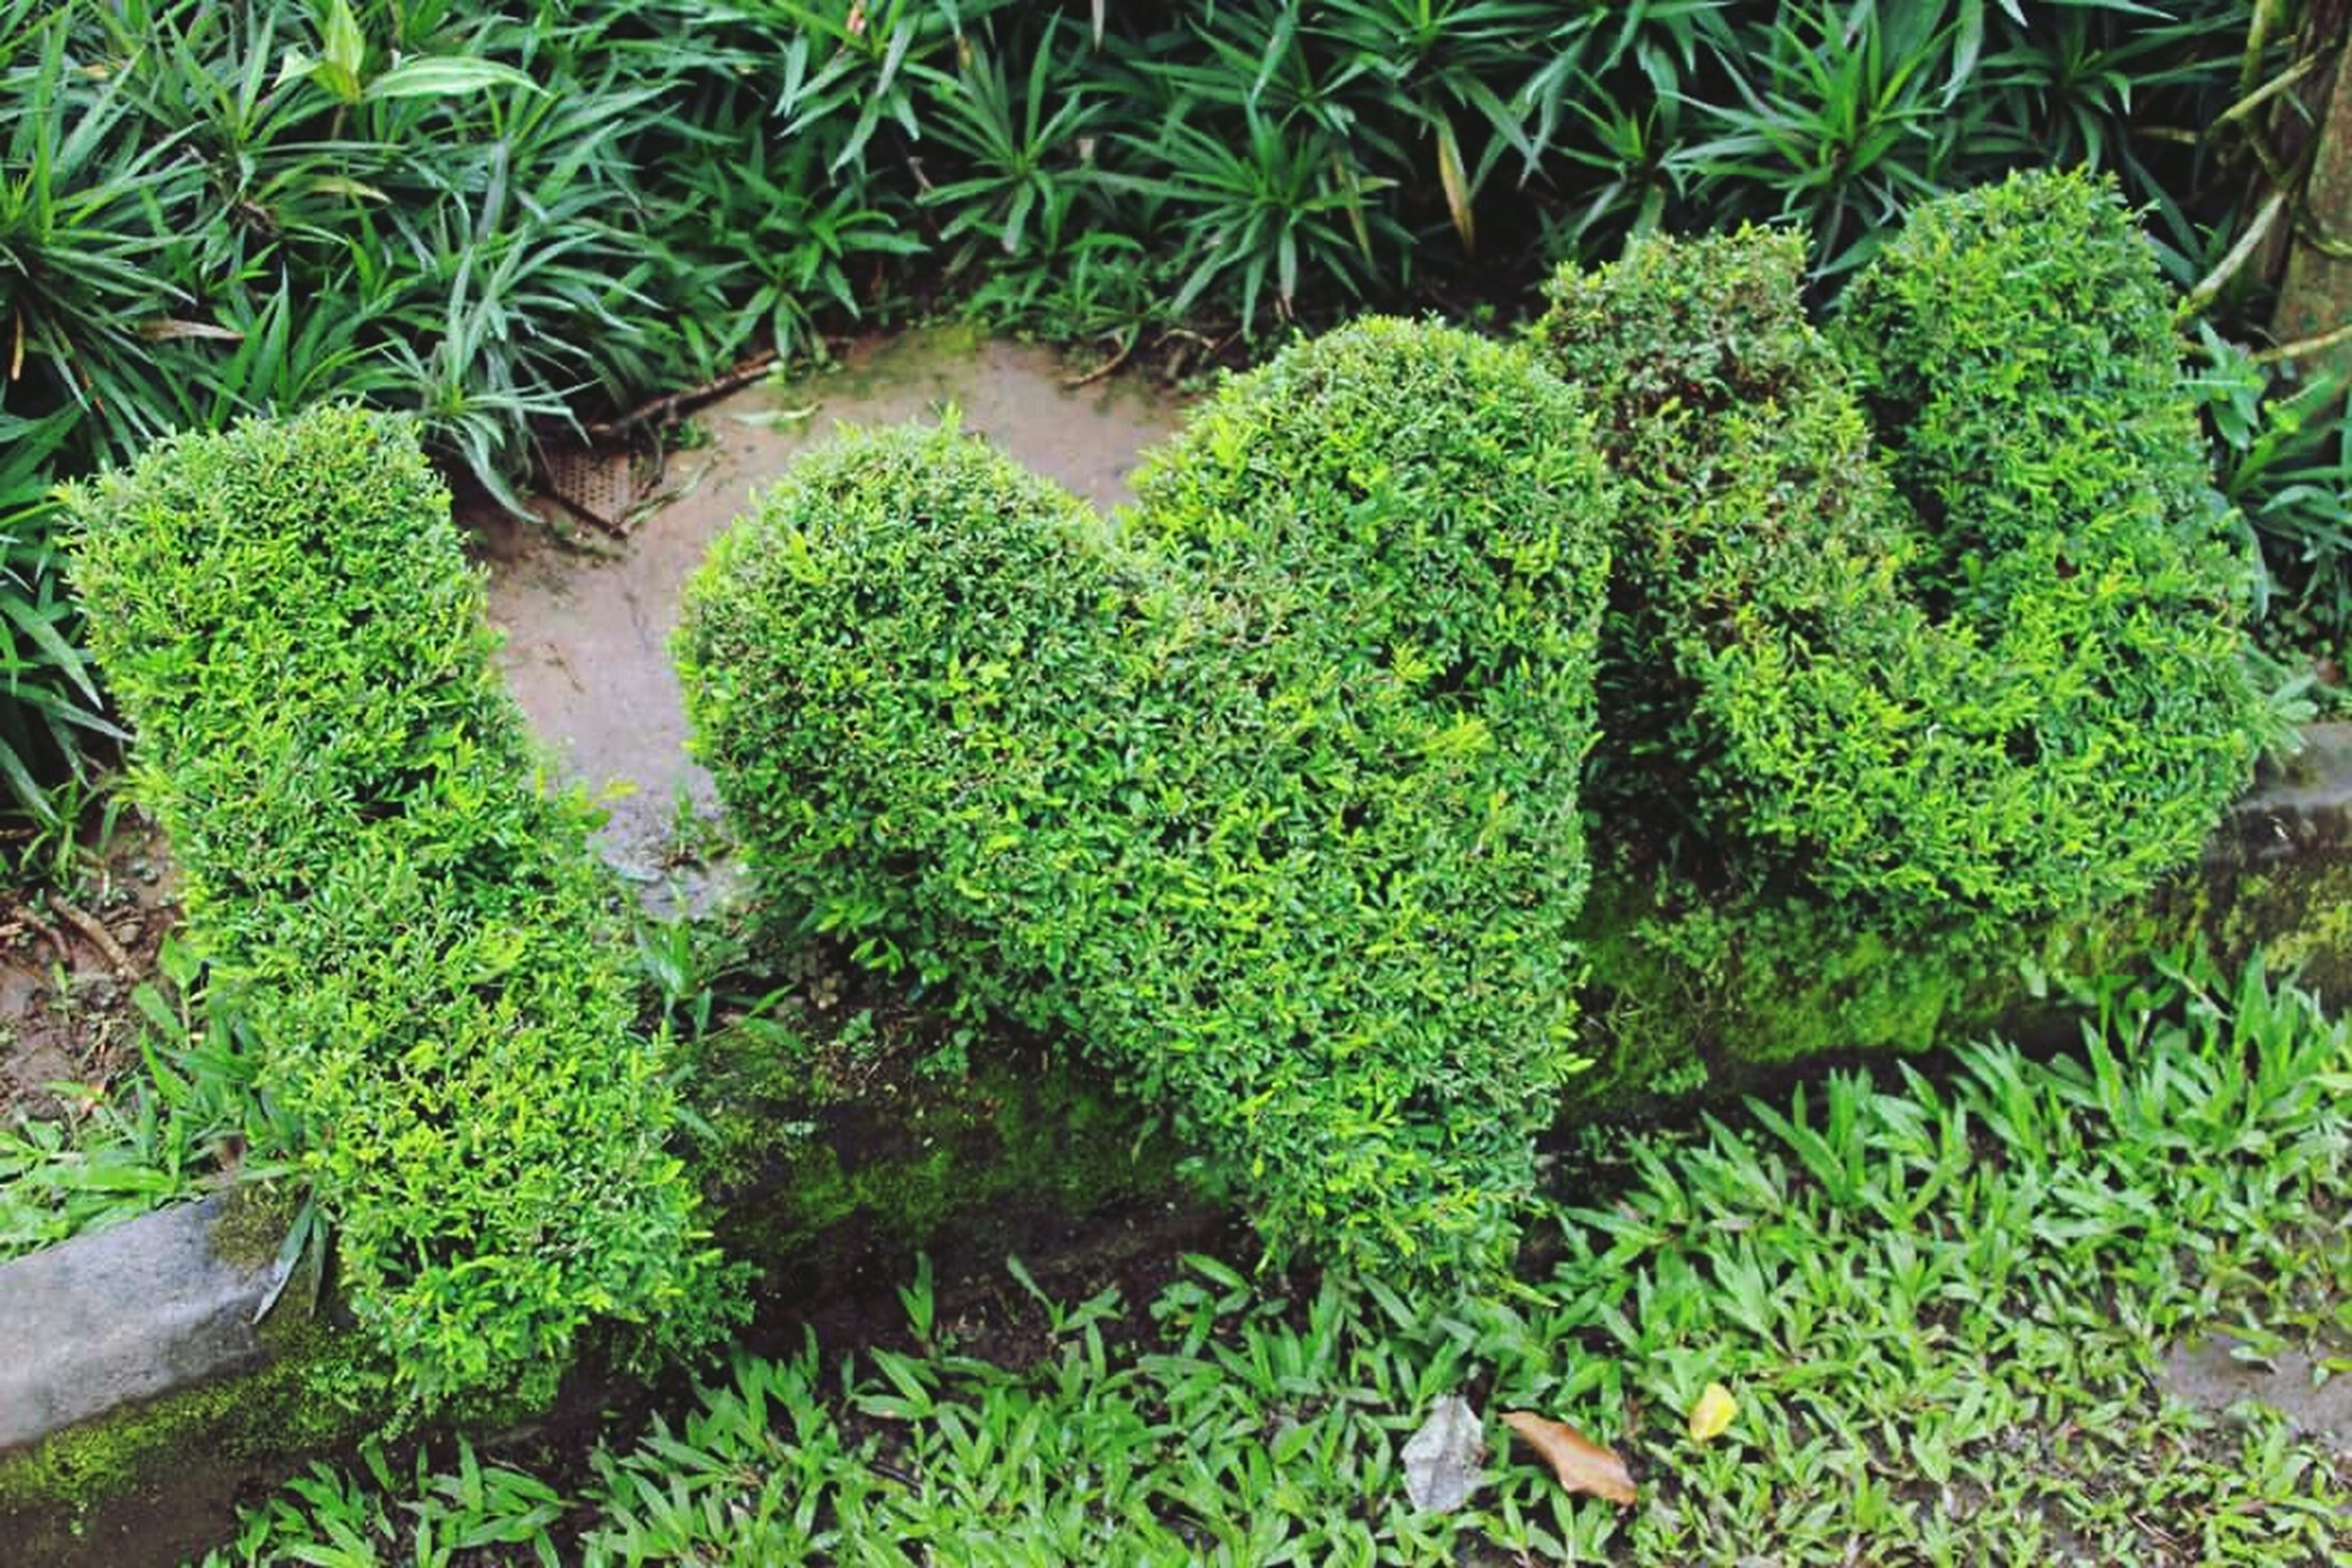 green color, growth, plant, high angle view, leaf, nature, moss, growing, grass, green, field, outdoors, no people, day, close-up, beauty in nature, freshness, lush foliage, potted plant, rock - object